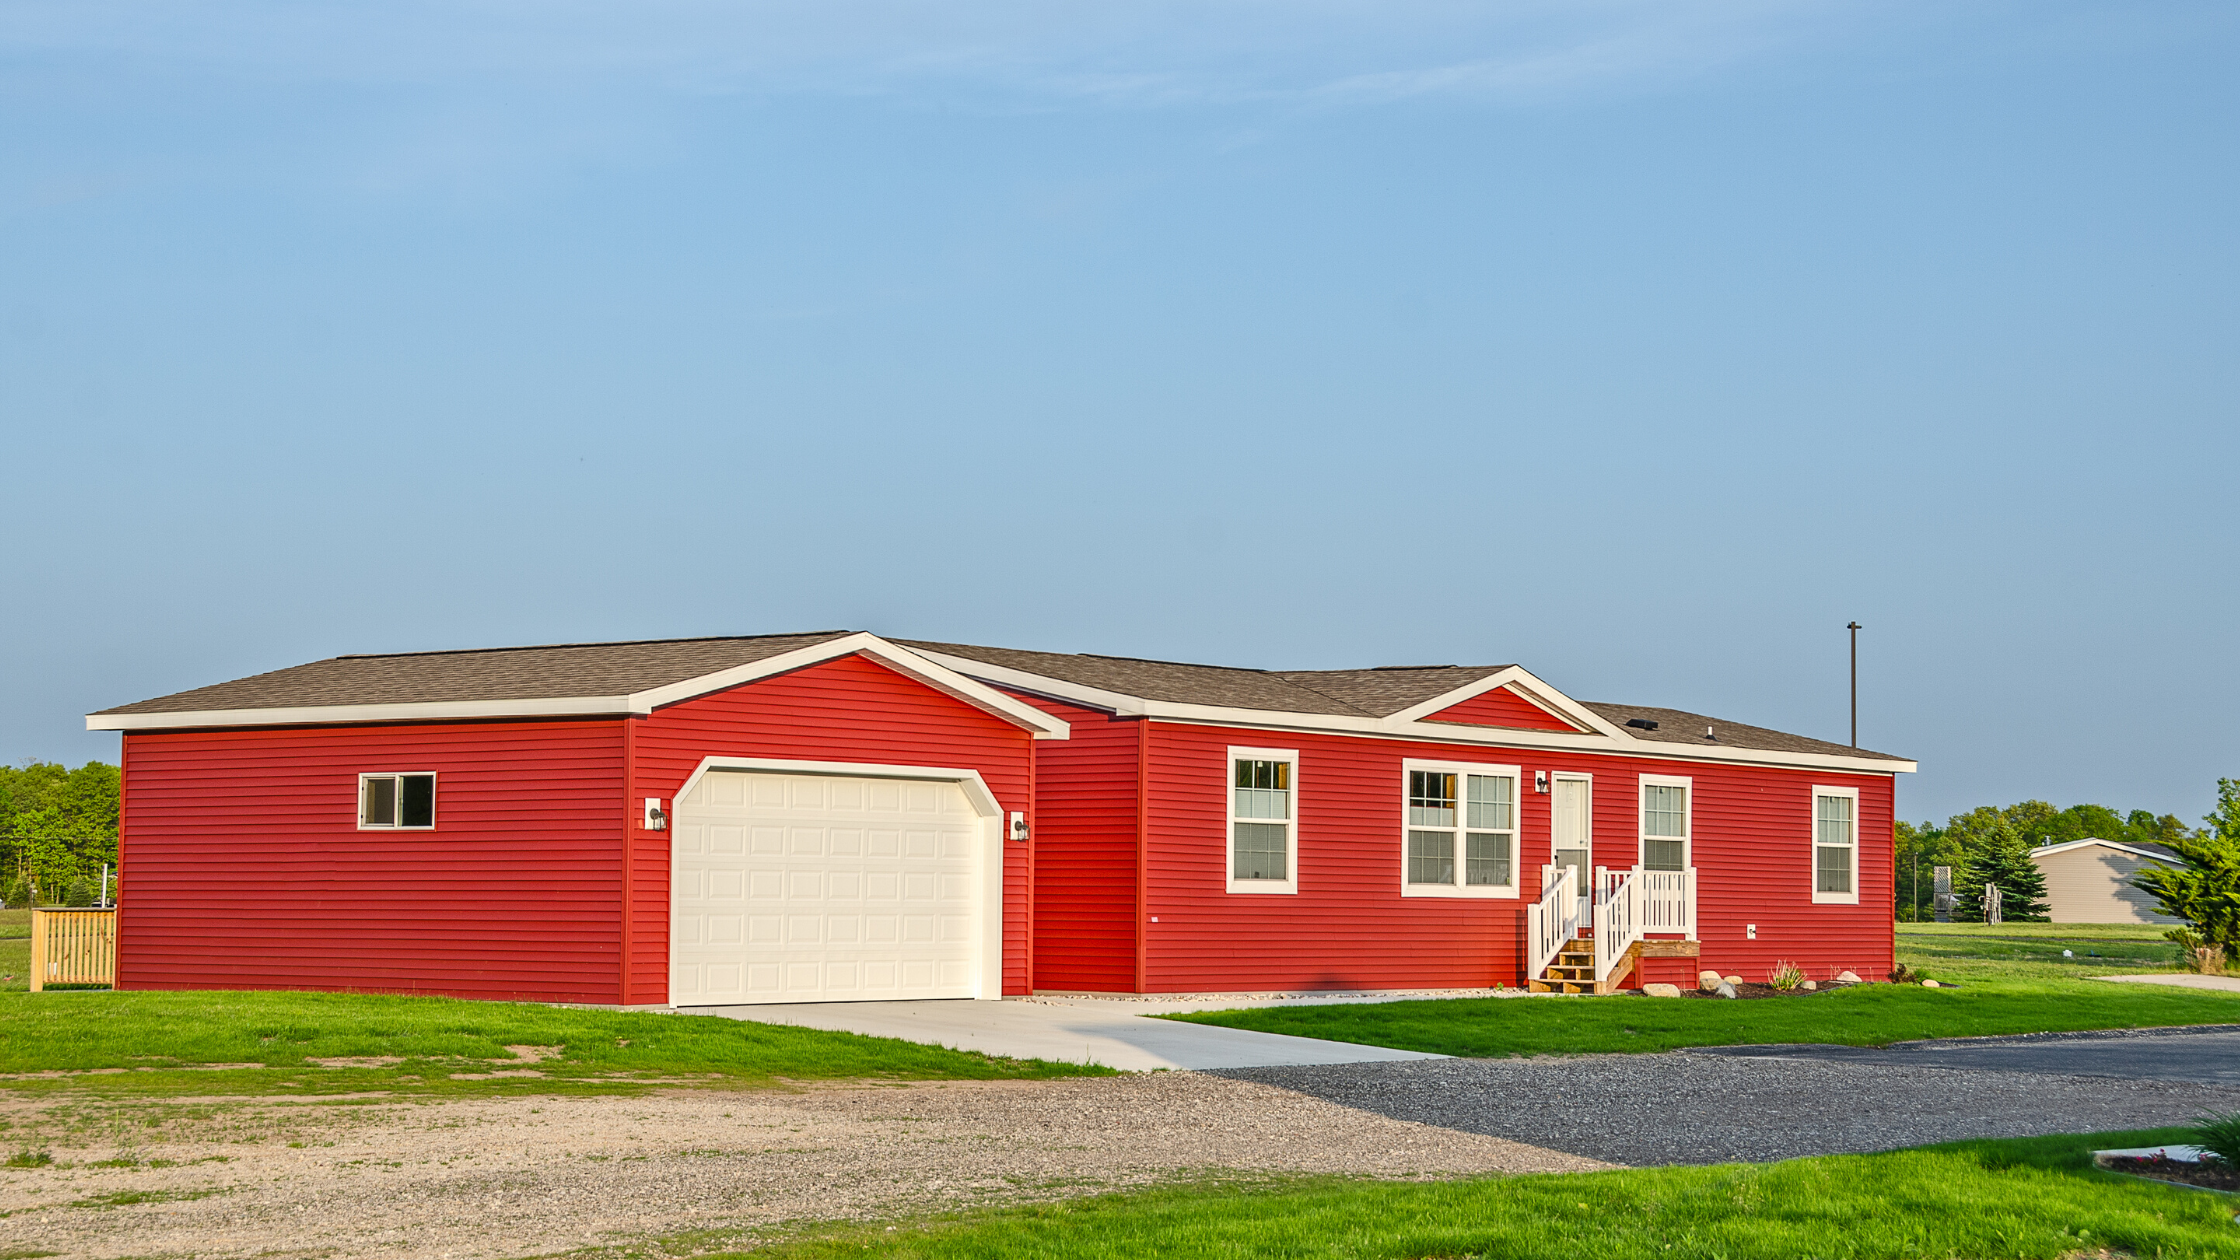 Modern Manufactured Homes Are as Safe as Site-Built Homes During Tornadoes and Hurricanes